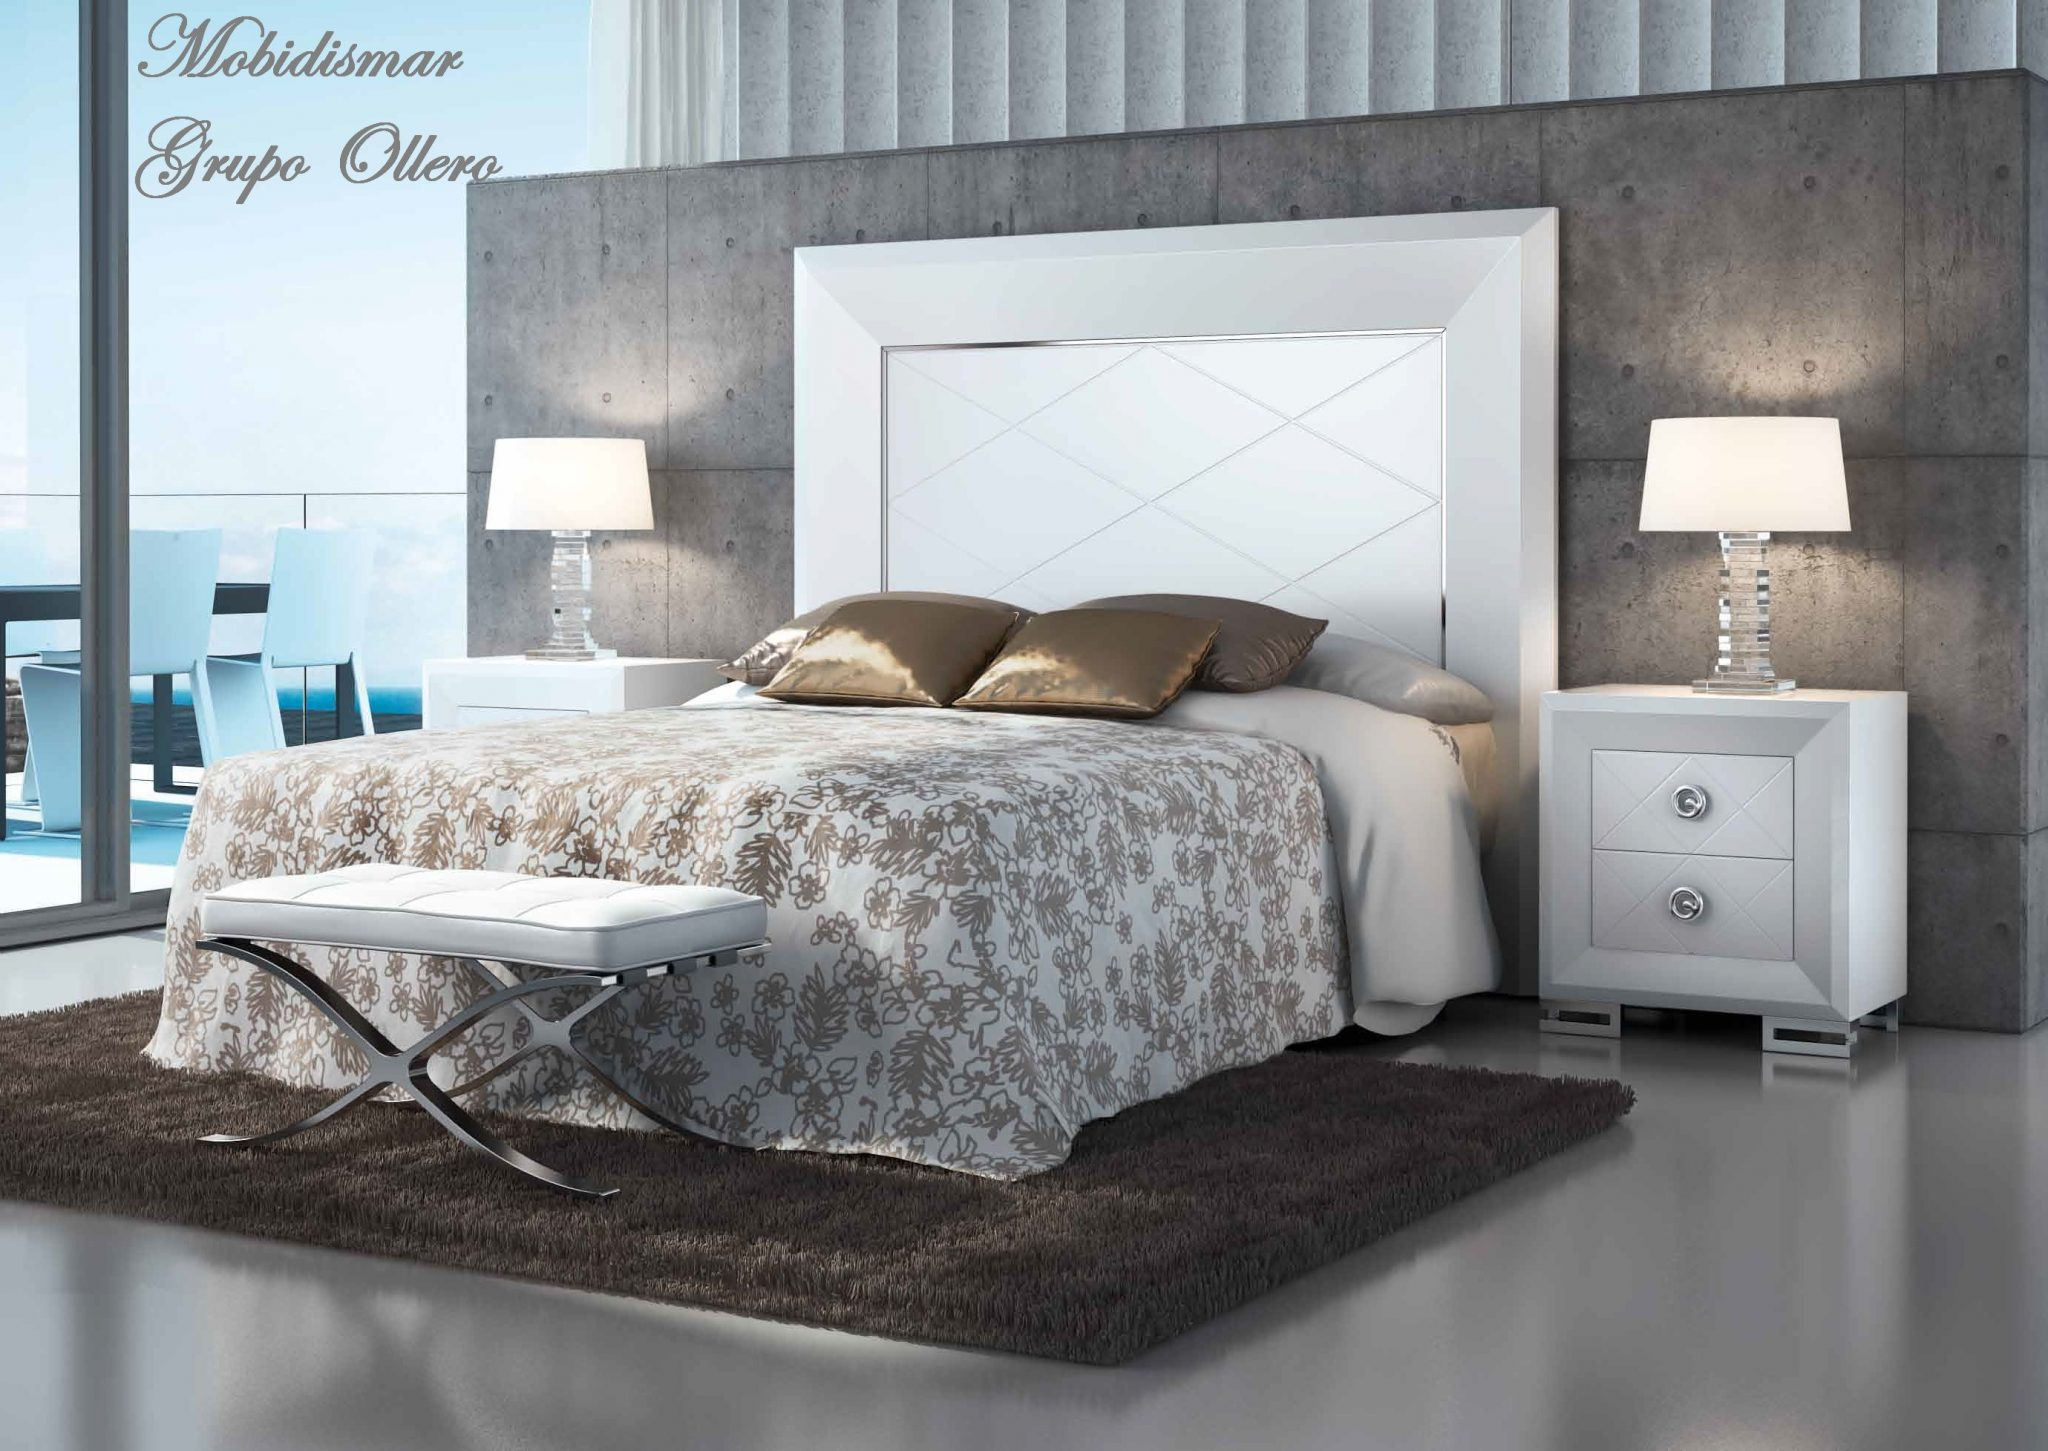 Decovarte bedroom D63